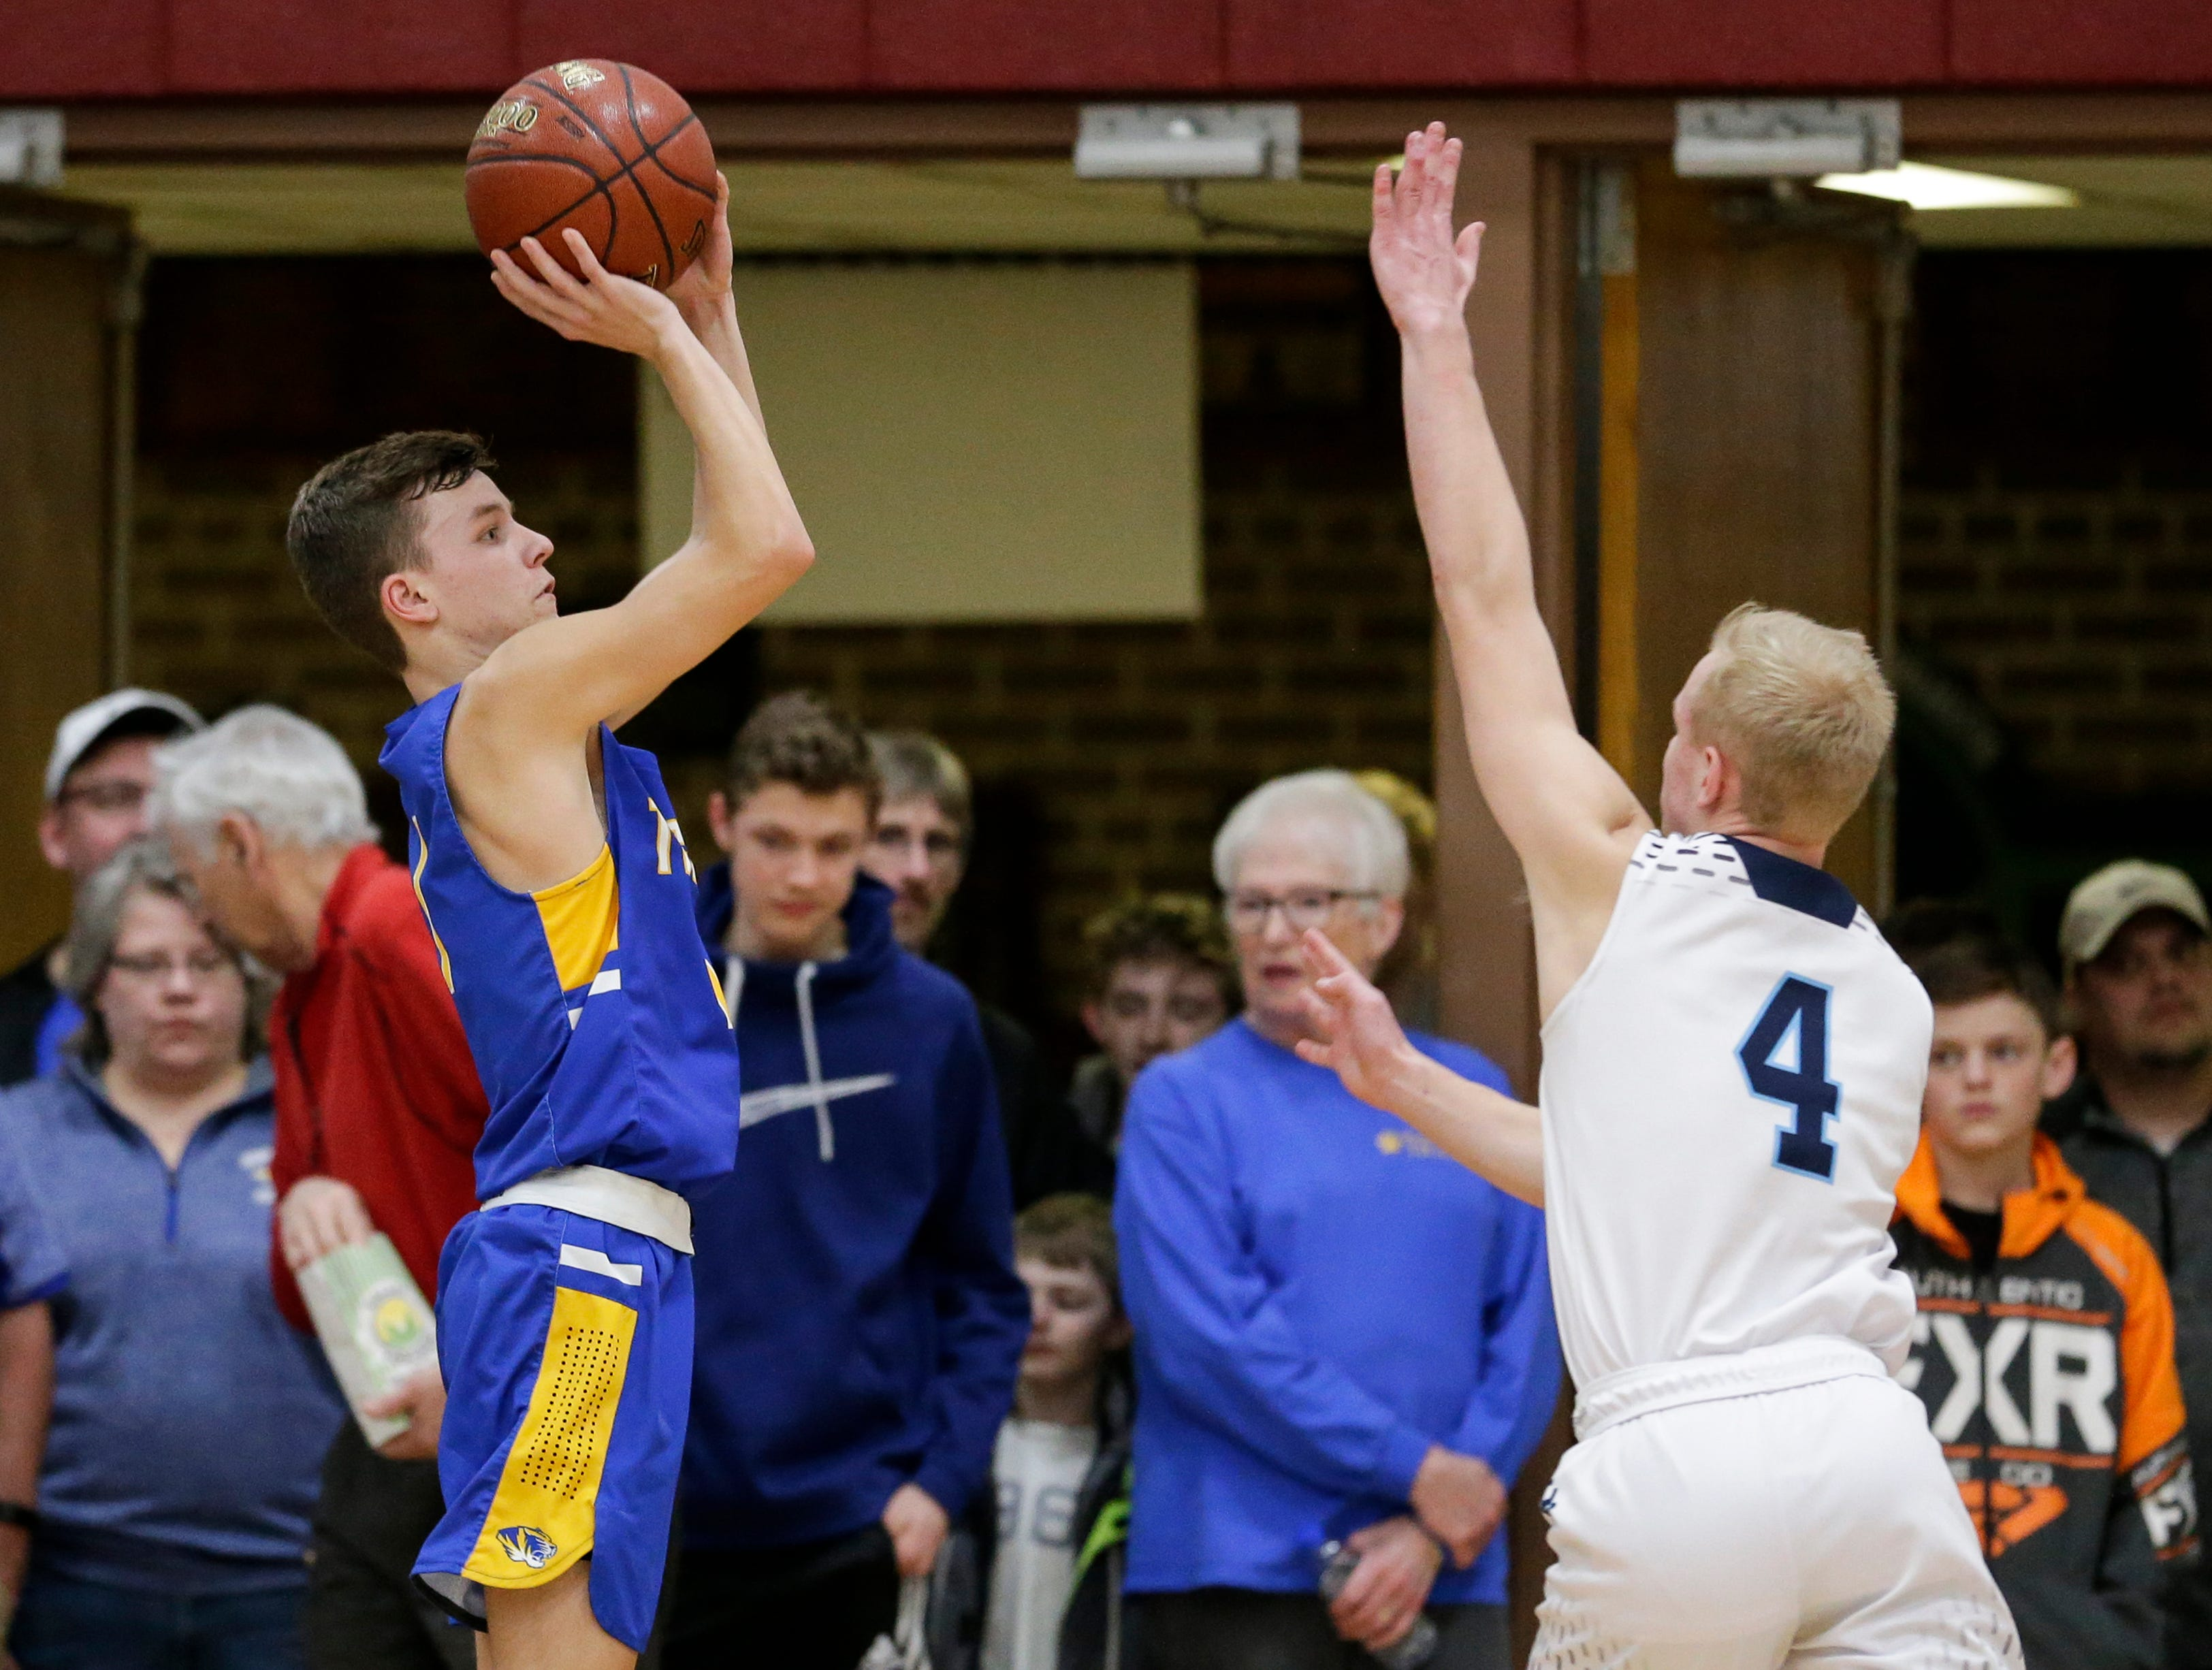 Howards Grove's Blake Pedrin (1) sinks a three against Roncalli in a WIAA Division 4 sectional semifinal at New Holstein High School Thursday, March 7, 2019, in New Holstein, Wis. Joshua Clark/USA TODAY NETWORK-Wisconsin